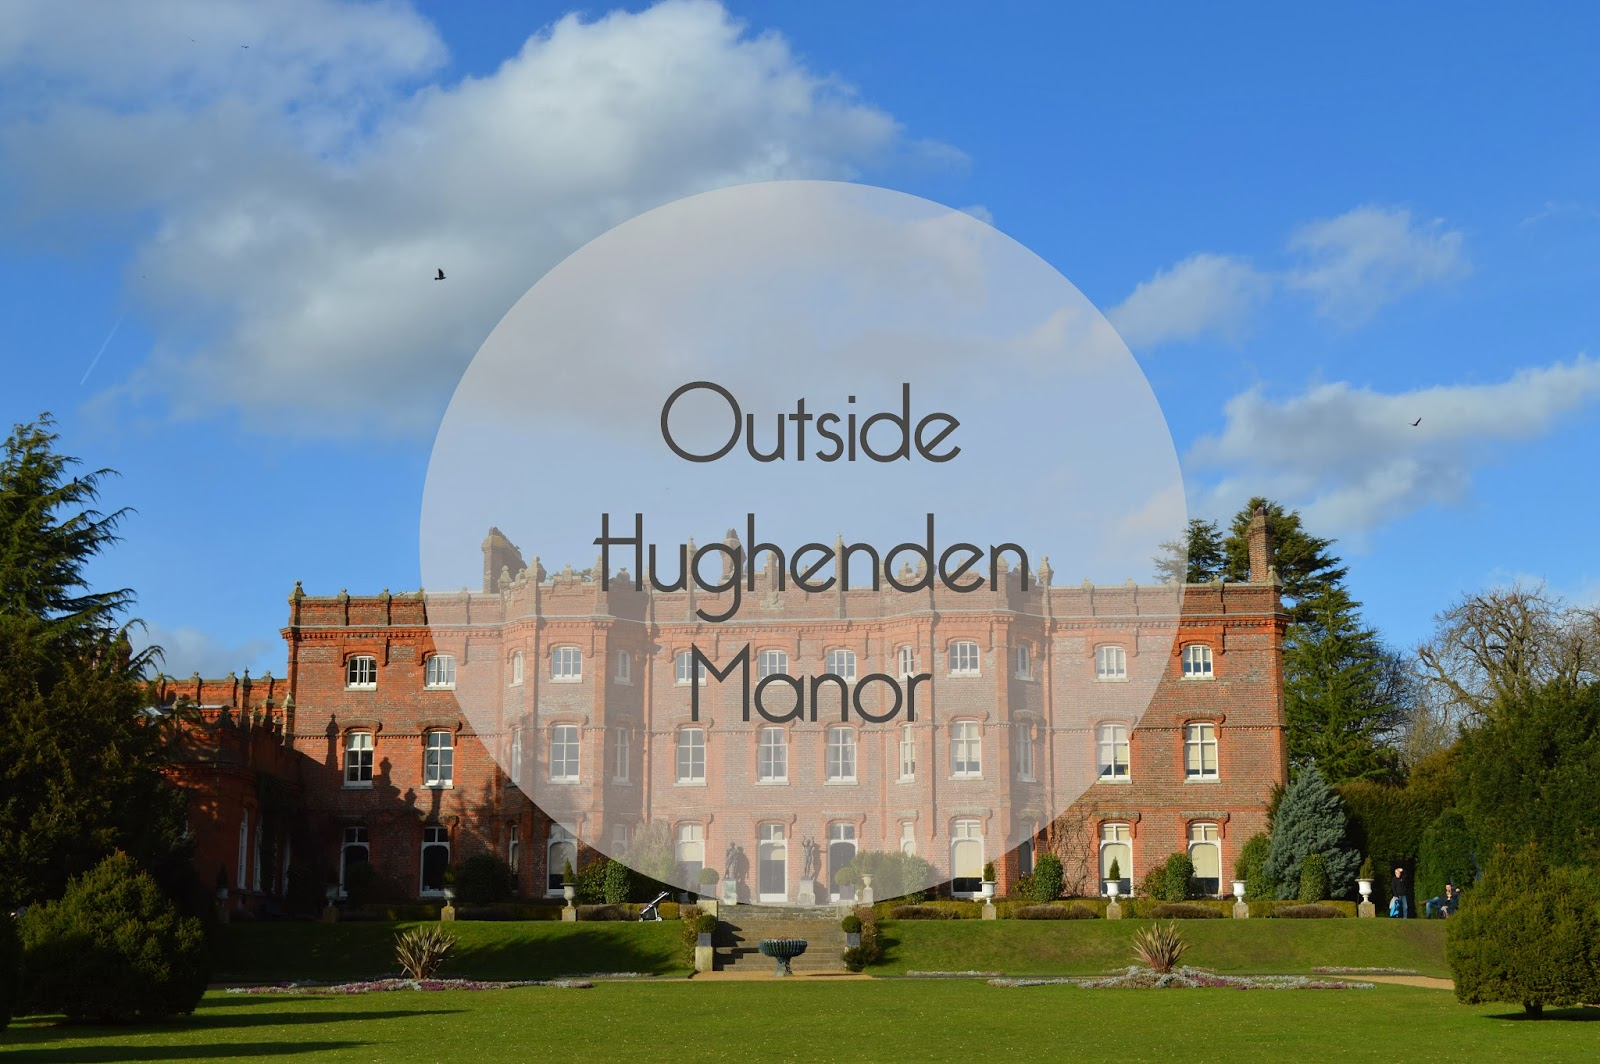 photo, photography, Feburary, old building, architecture, Hughenden Manor, National Trust, visit, day trip, UK, Buckinghamshire, Victorian, 18th century, country house, gardens, woodland, Prime Minister, Benjamin Disraeli